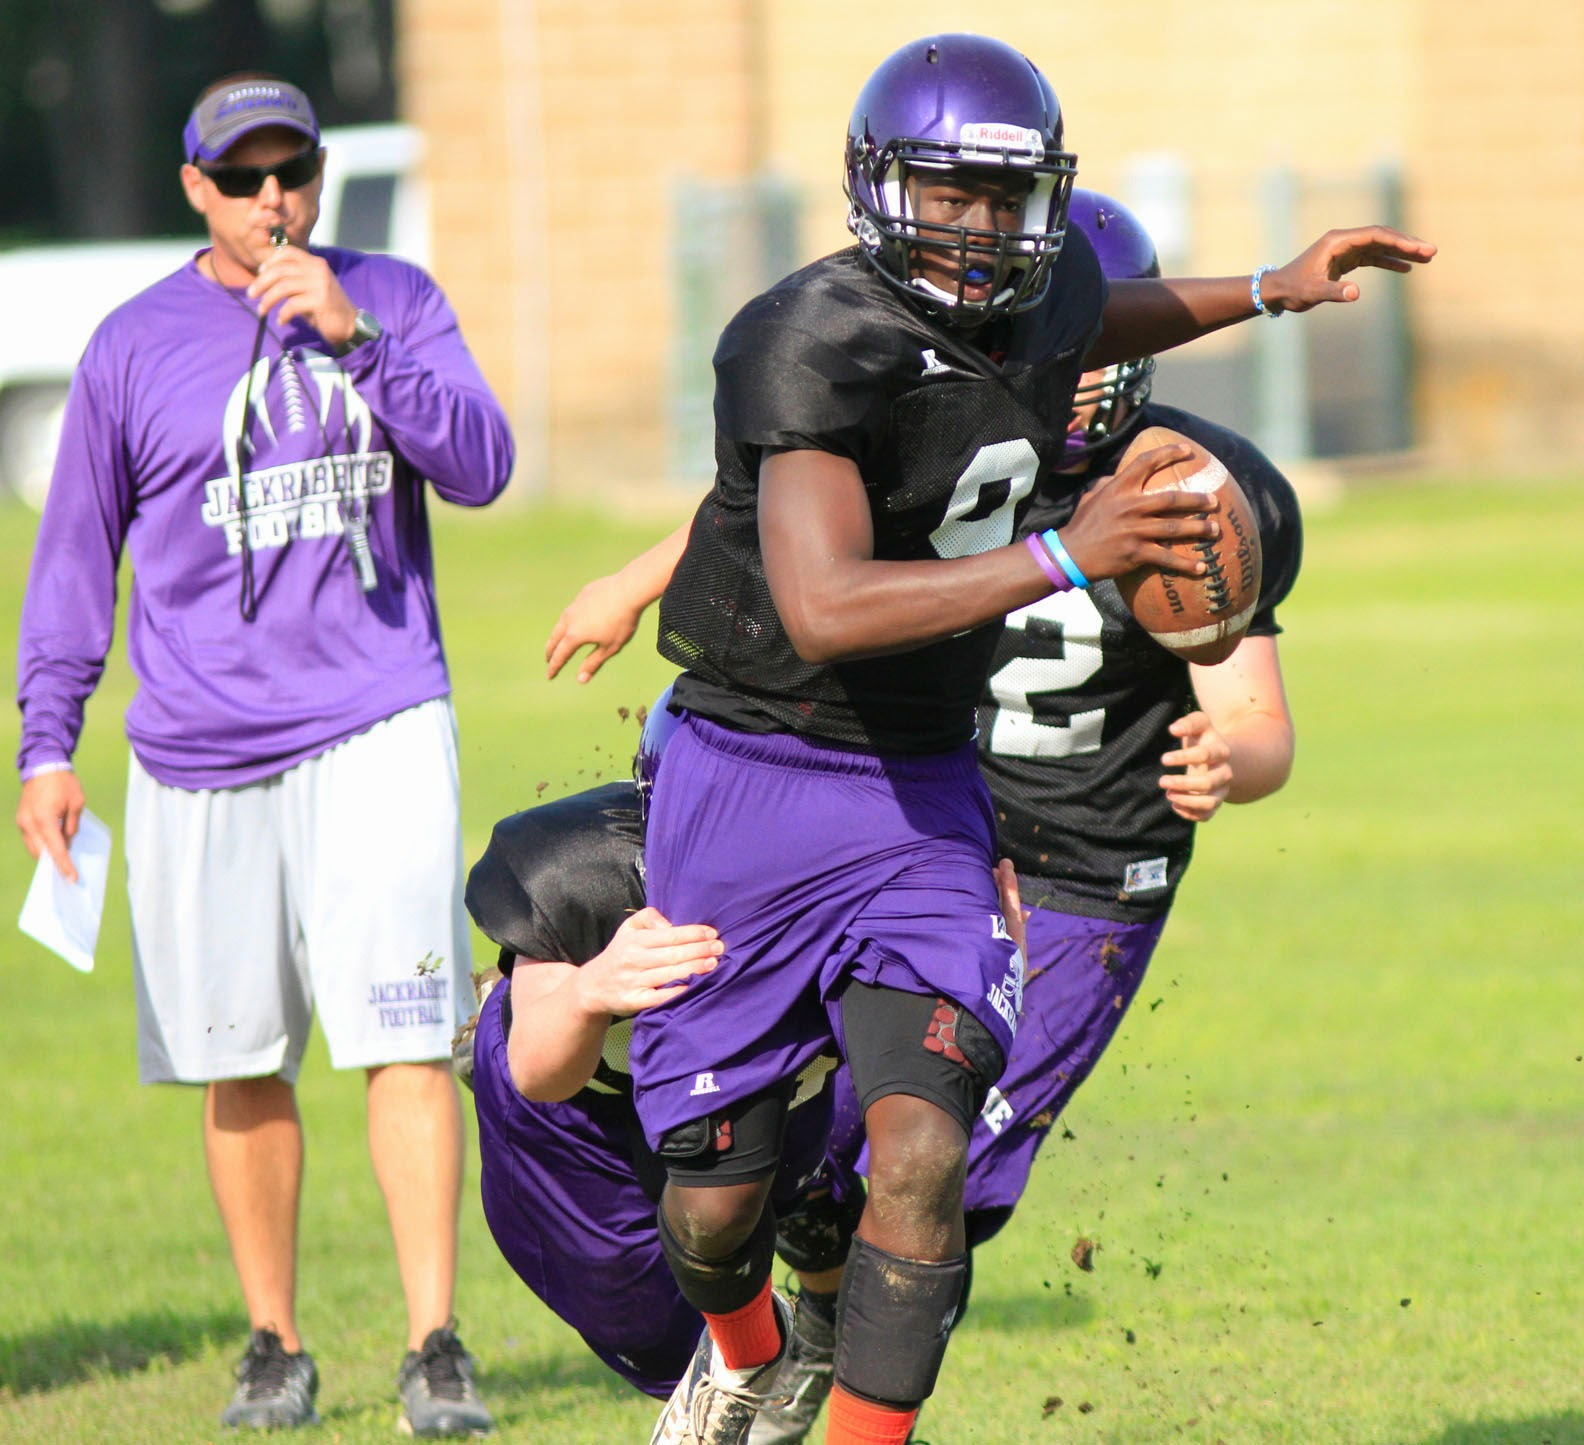 Lonoke County Sports Report: Lonoke football practice